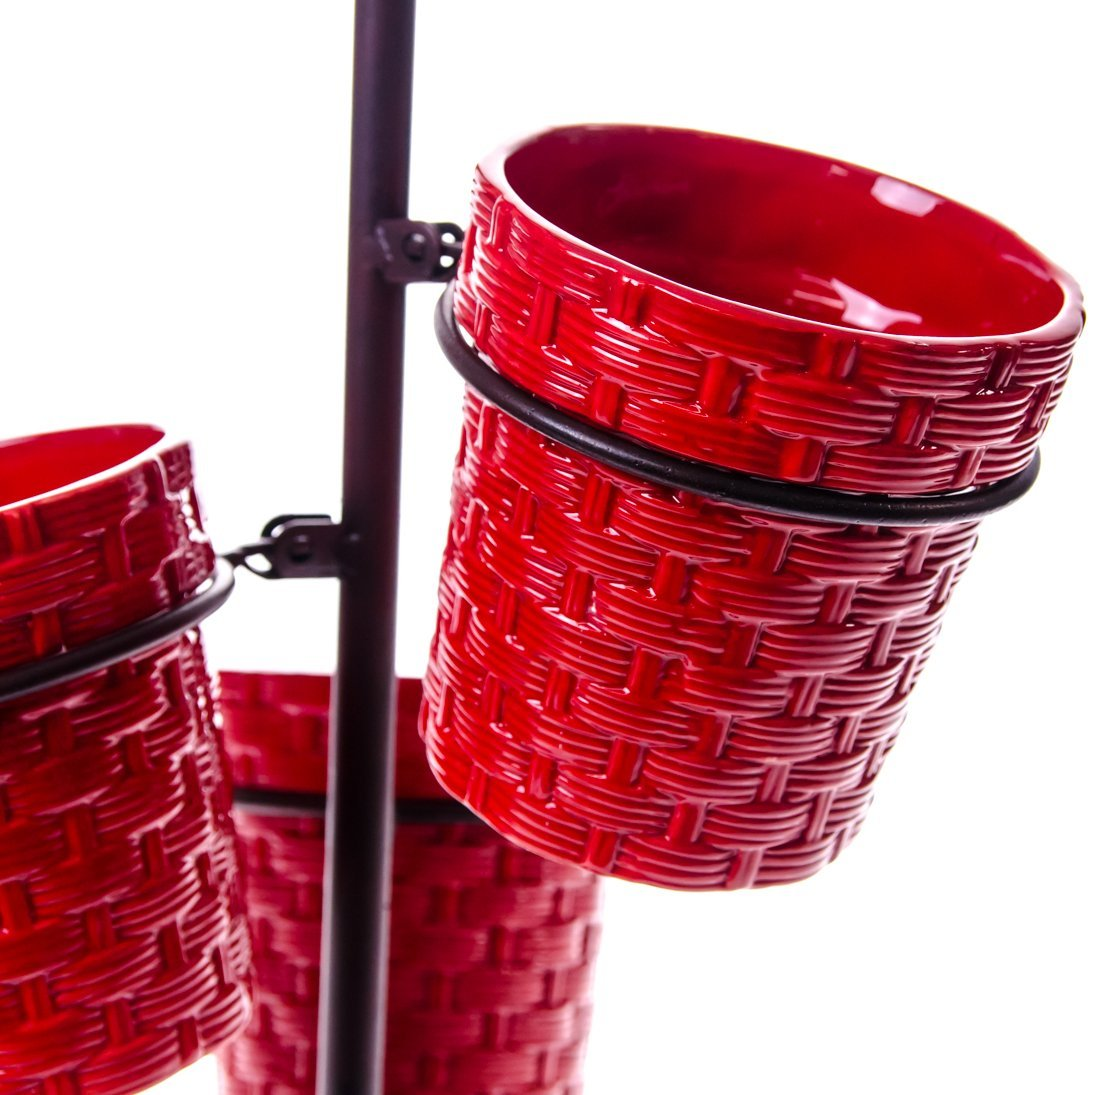 Charming Red Utensil Caddy For Kitchen Accessories Ideas